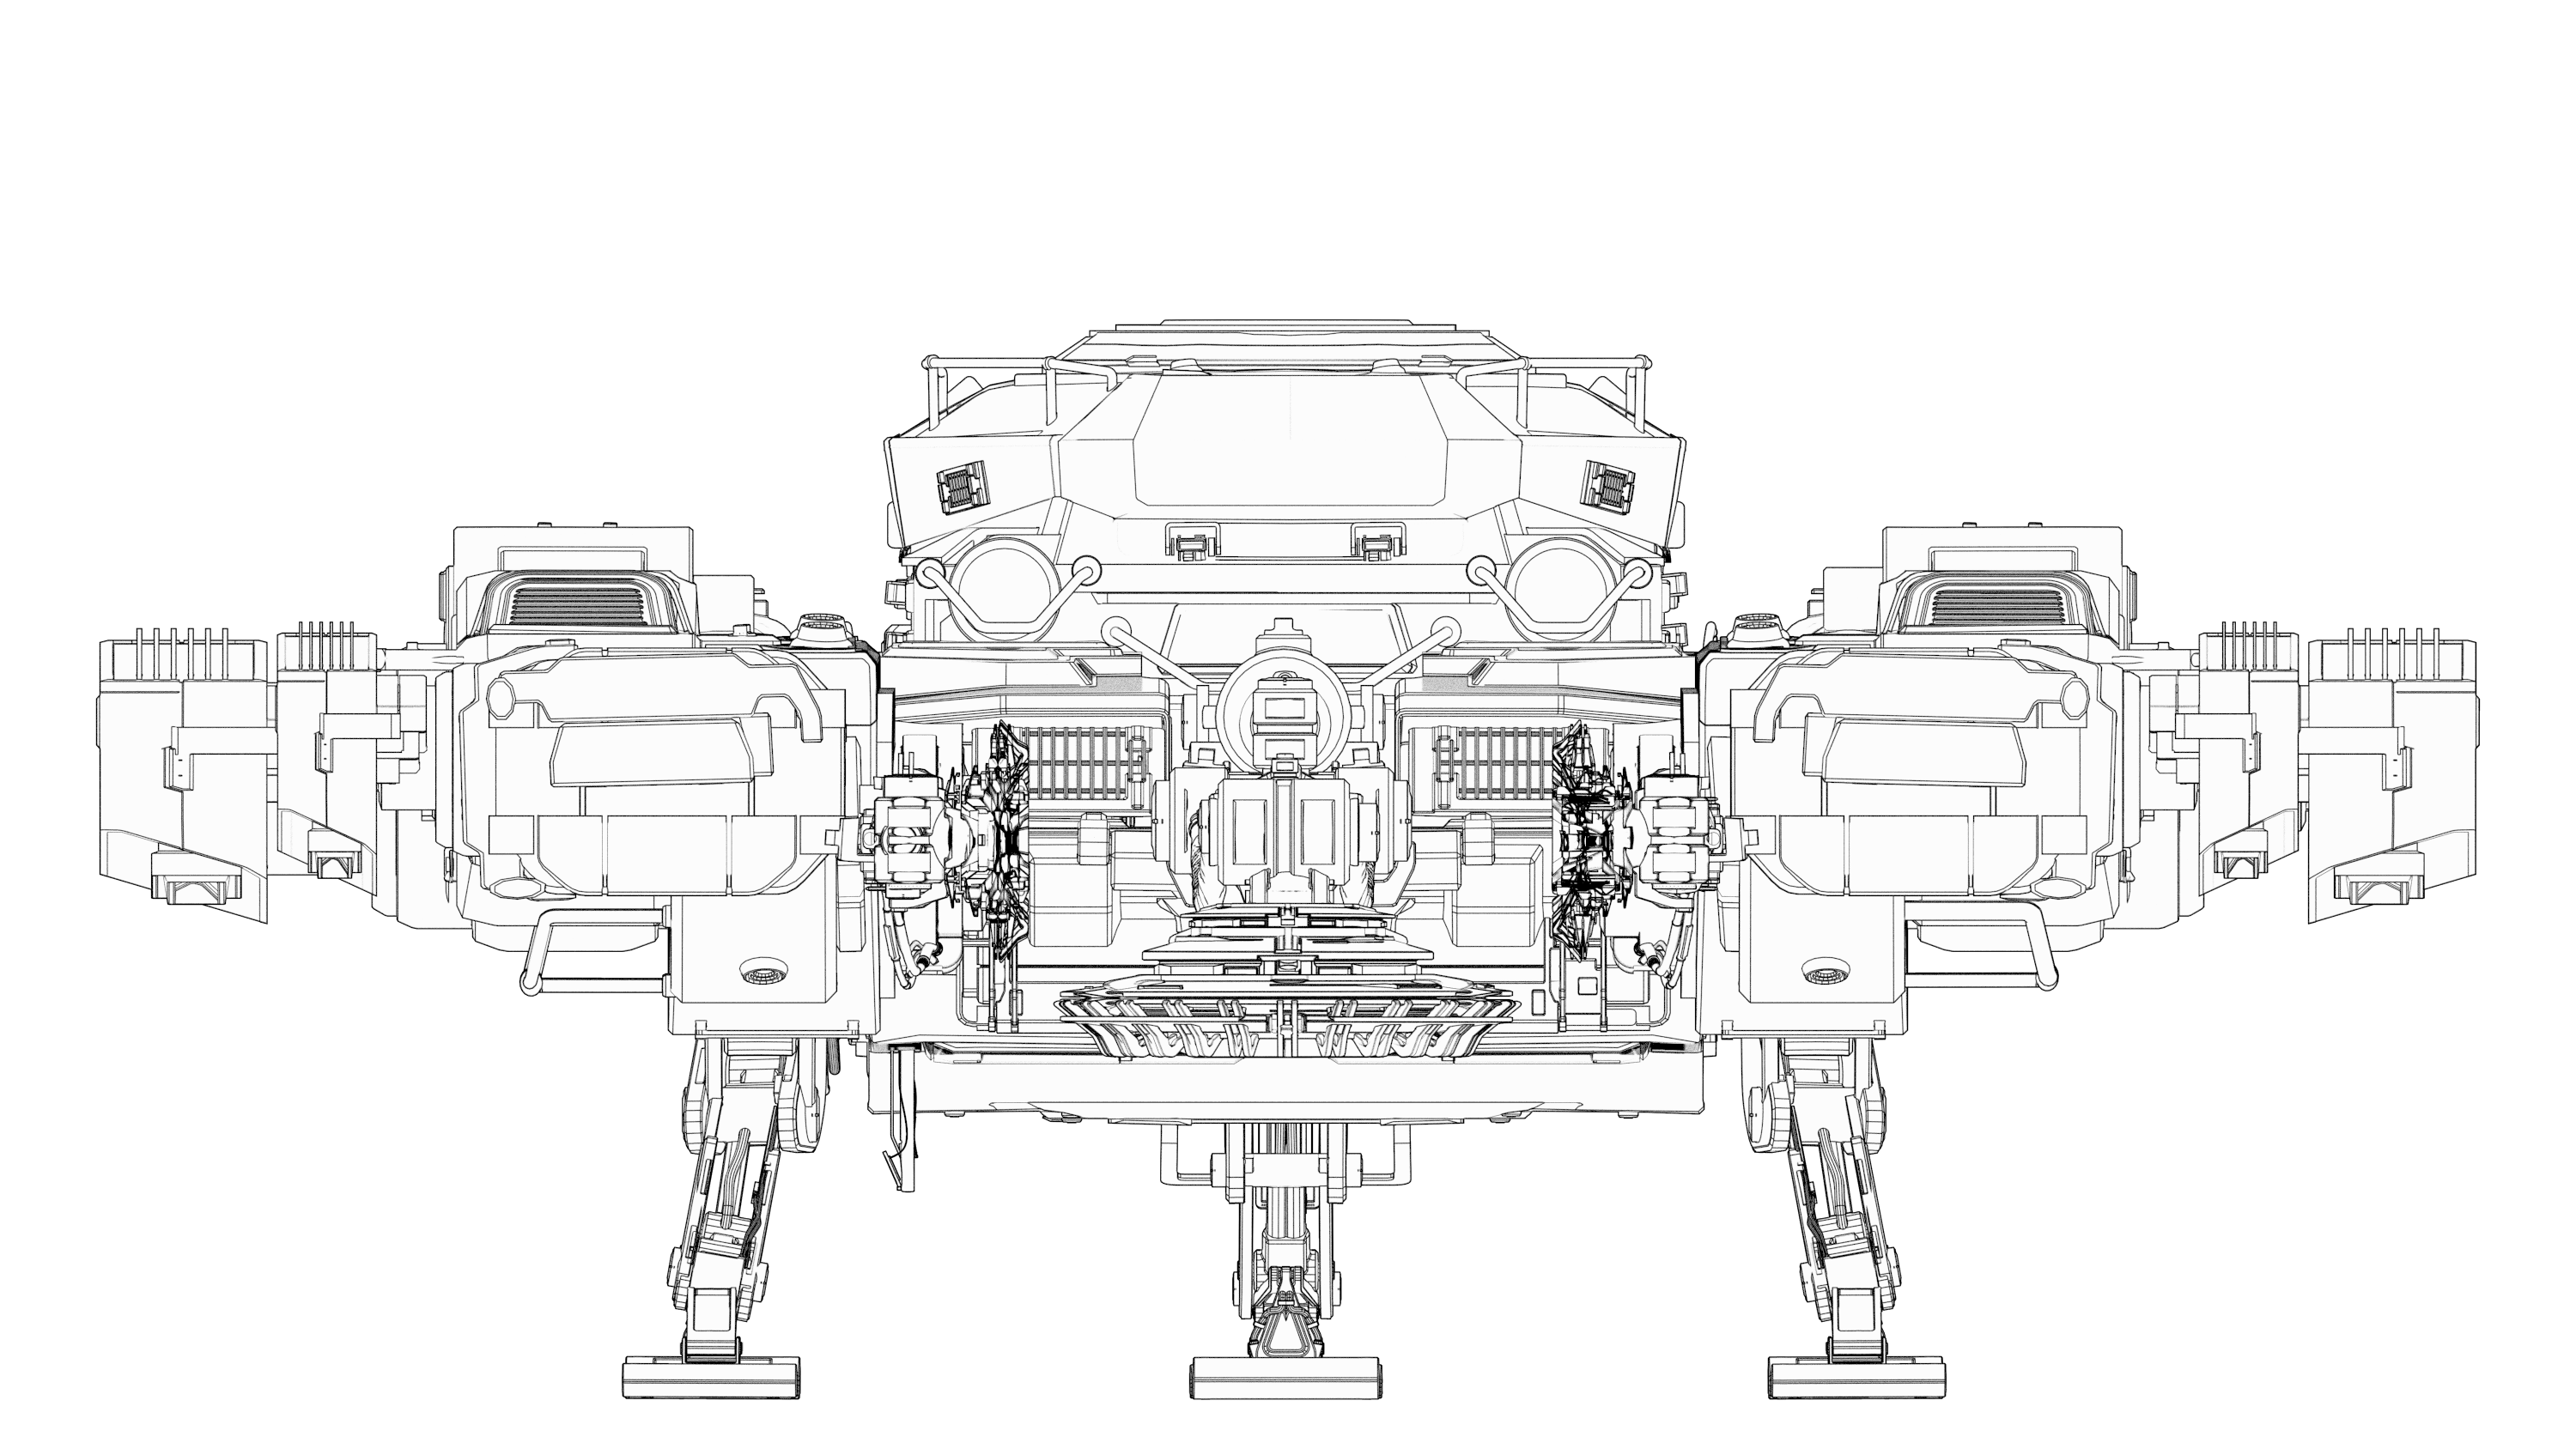 Back view of the Argo SRV